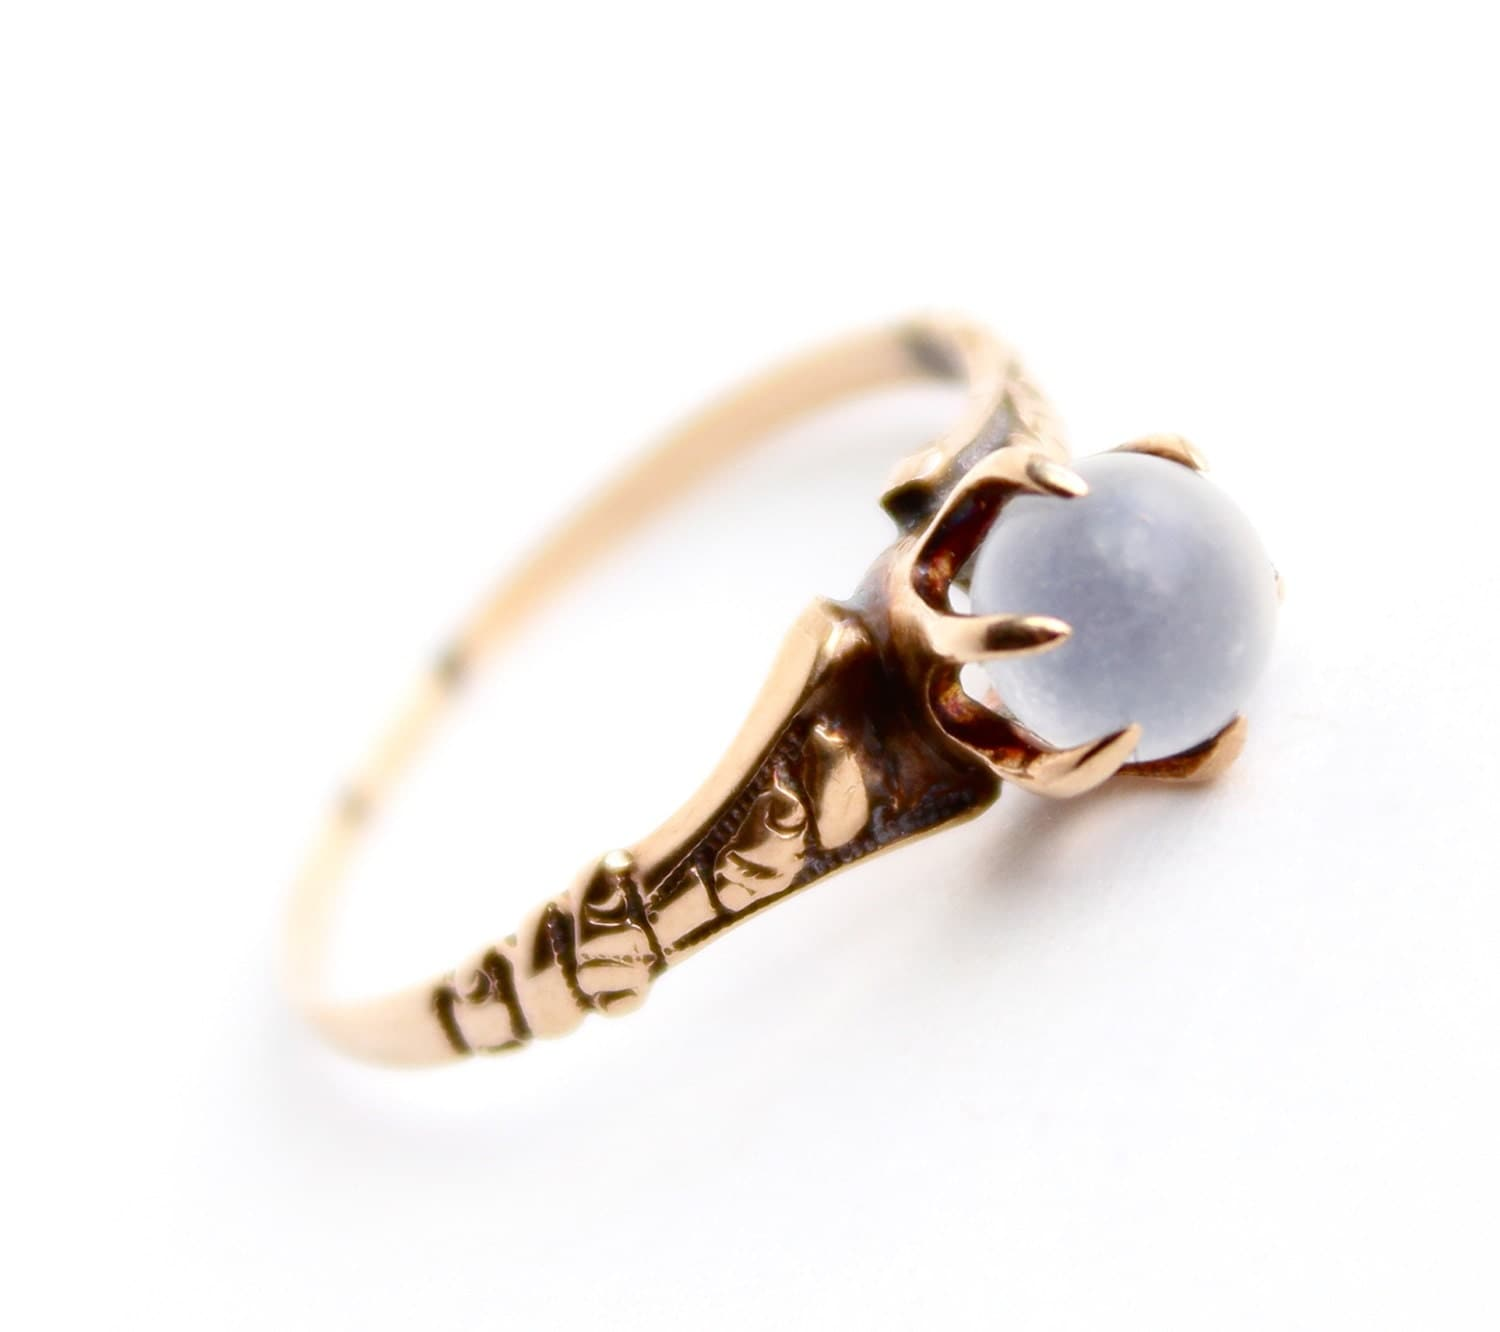 Antique Victorian 10k Rose Gold Moonstone Ring Size 6 1 2